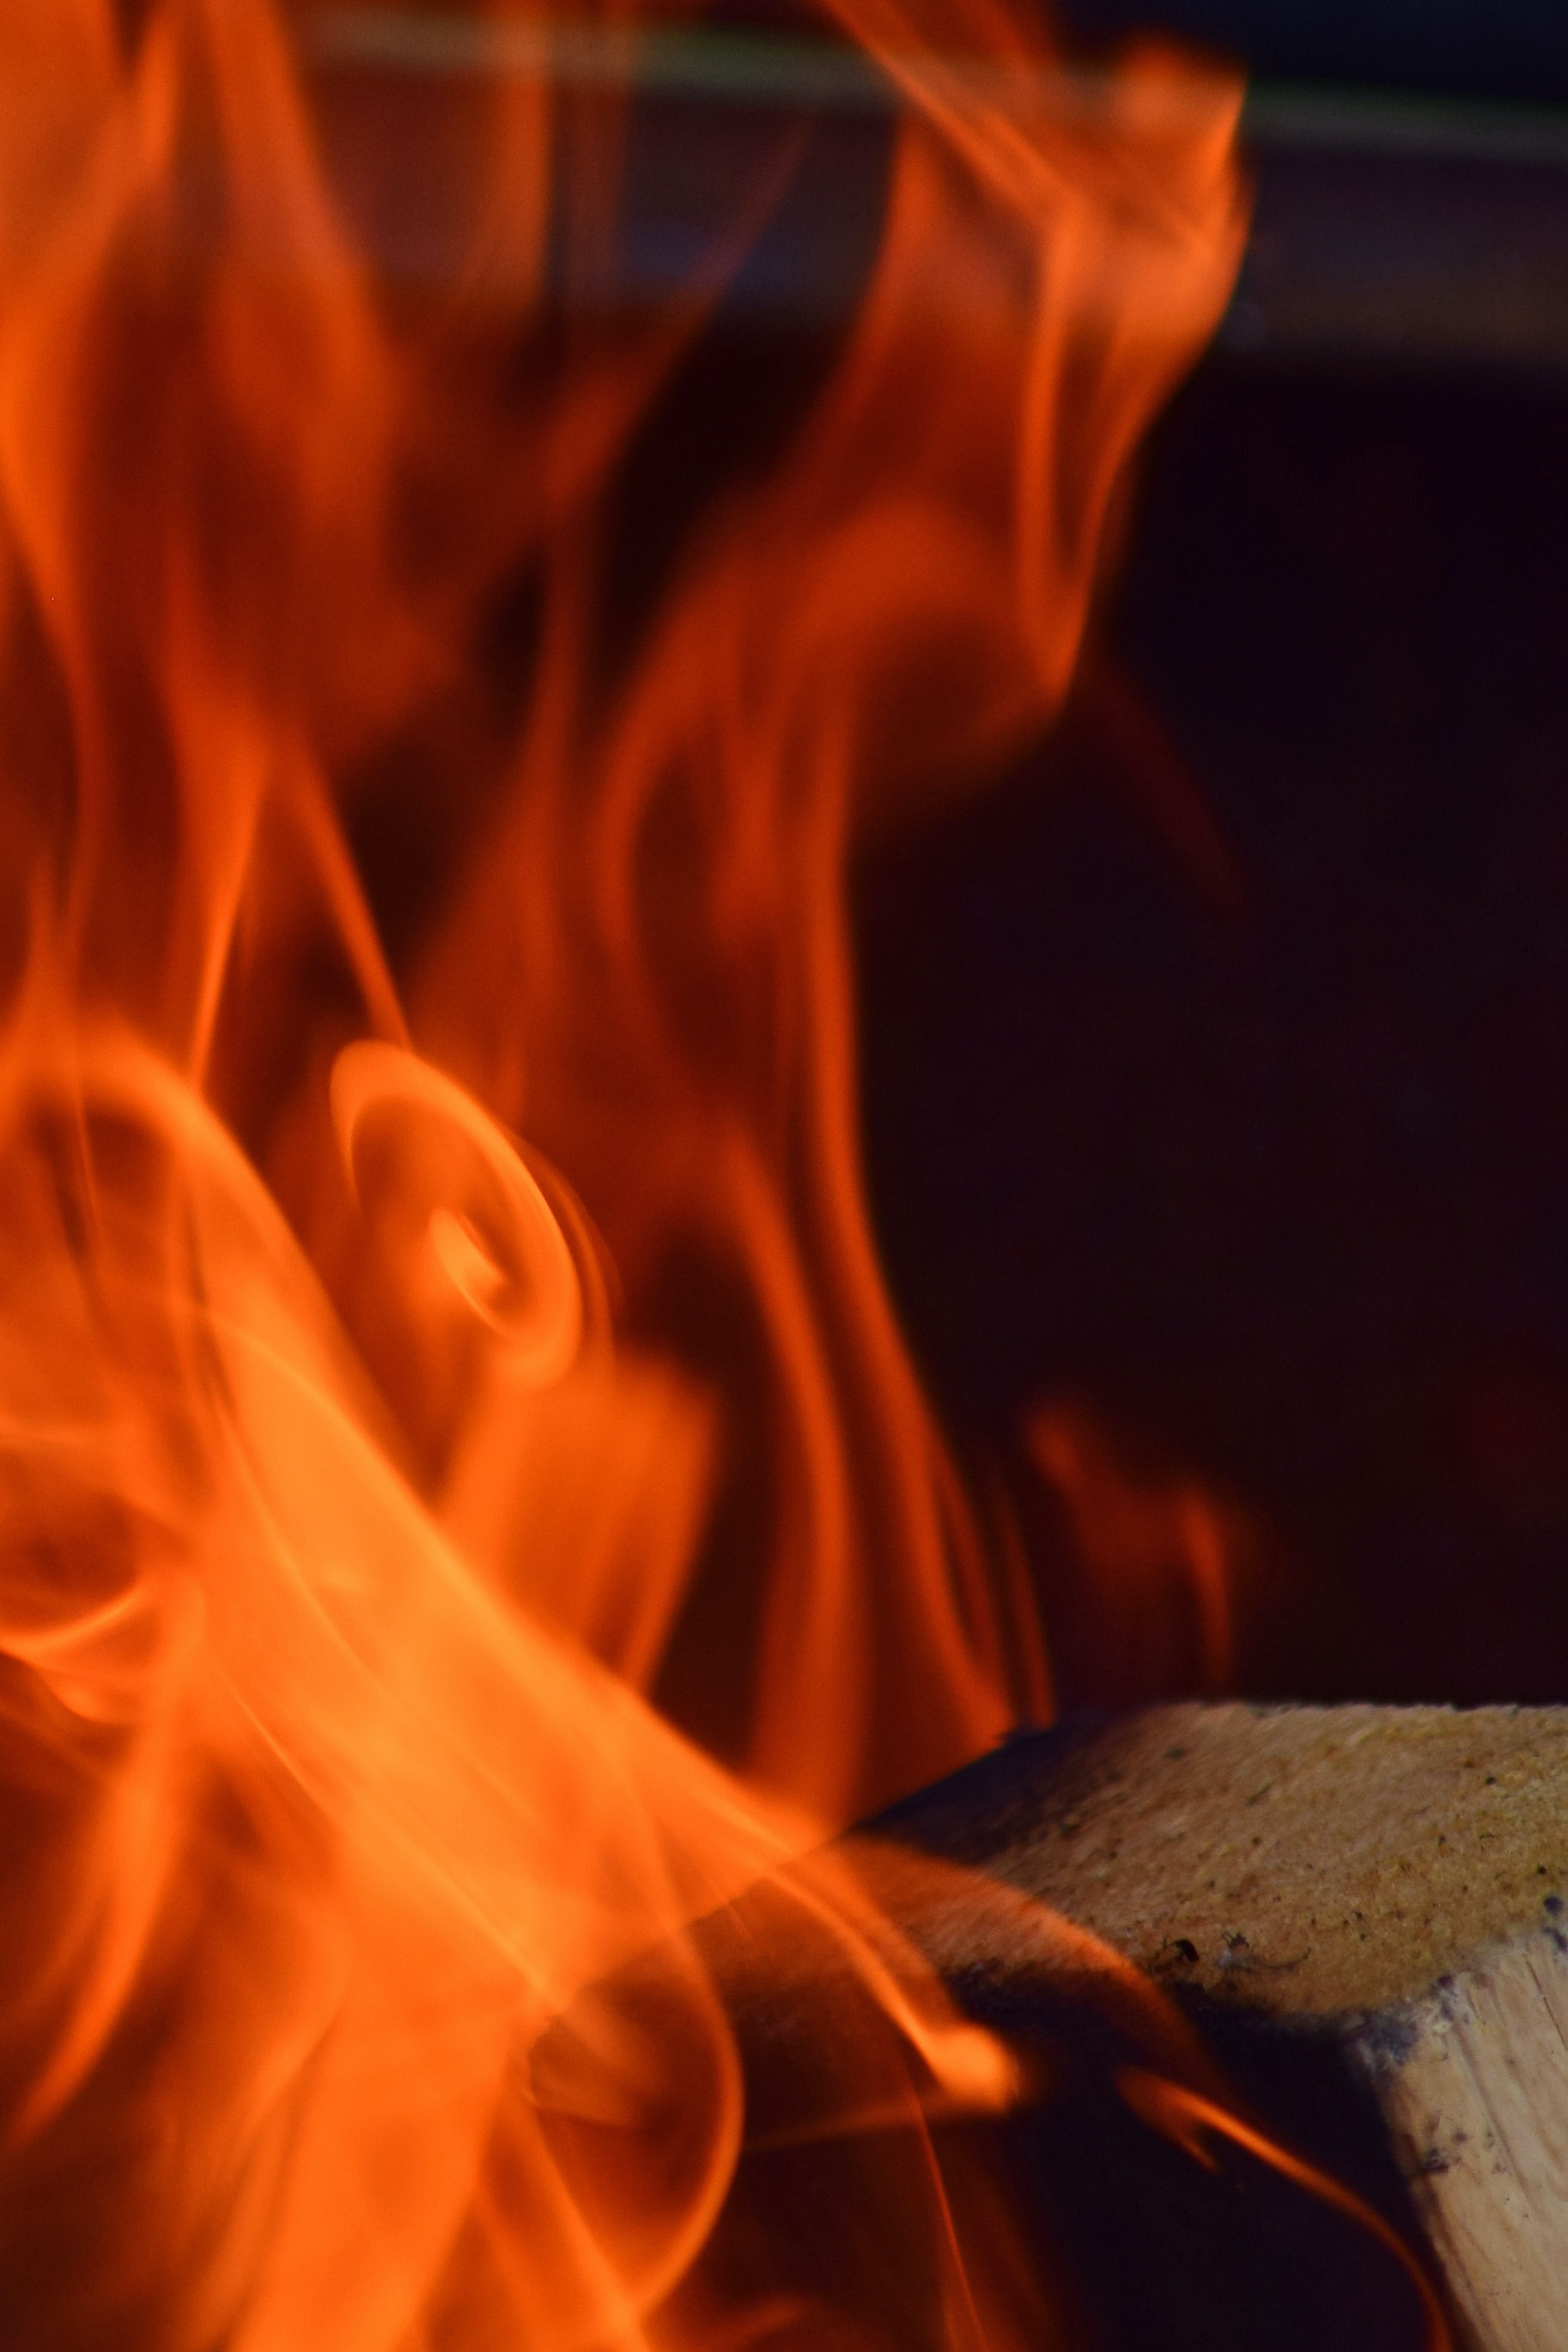 FREE STOCK PHOTO OF FIRE FIRE PIT